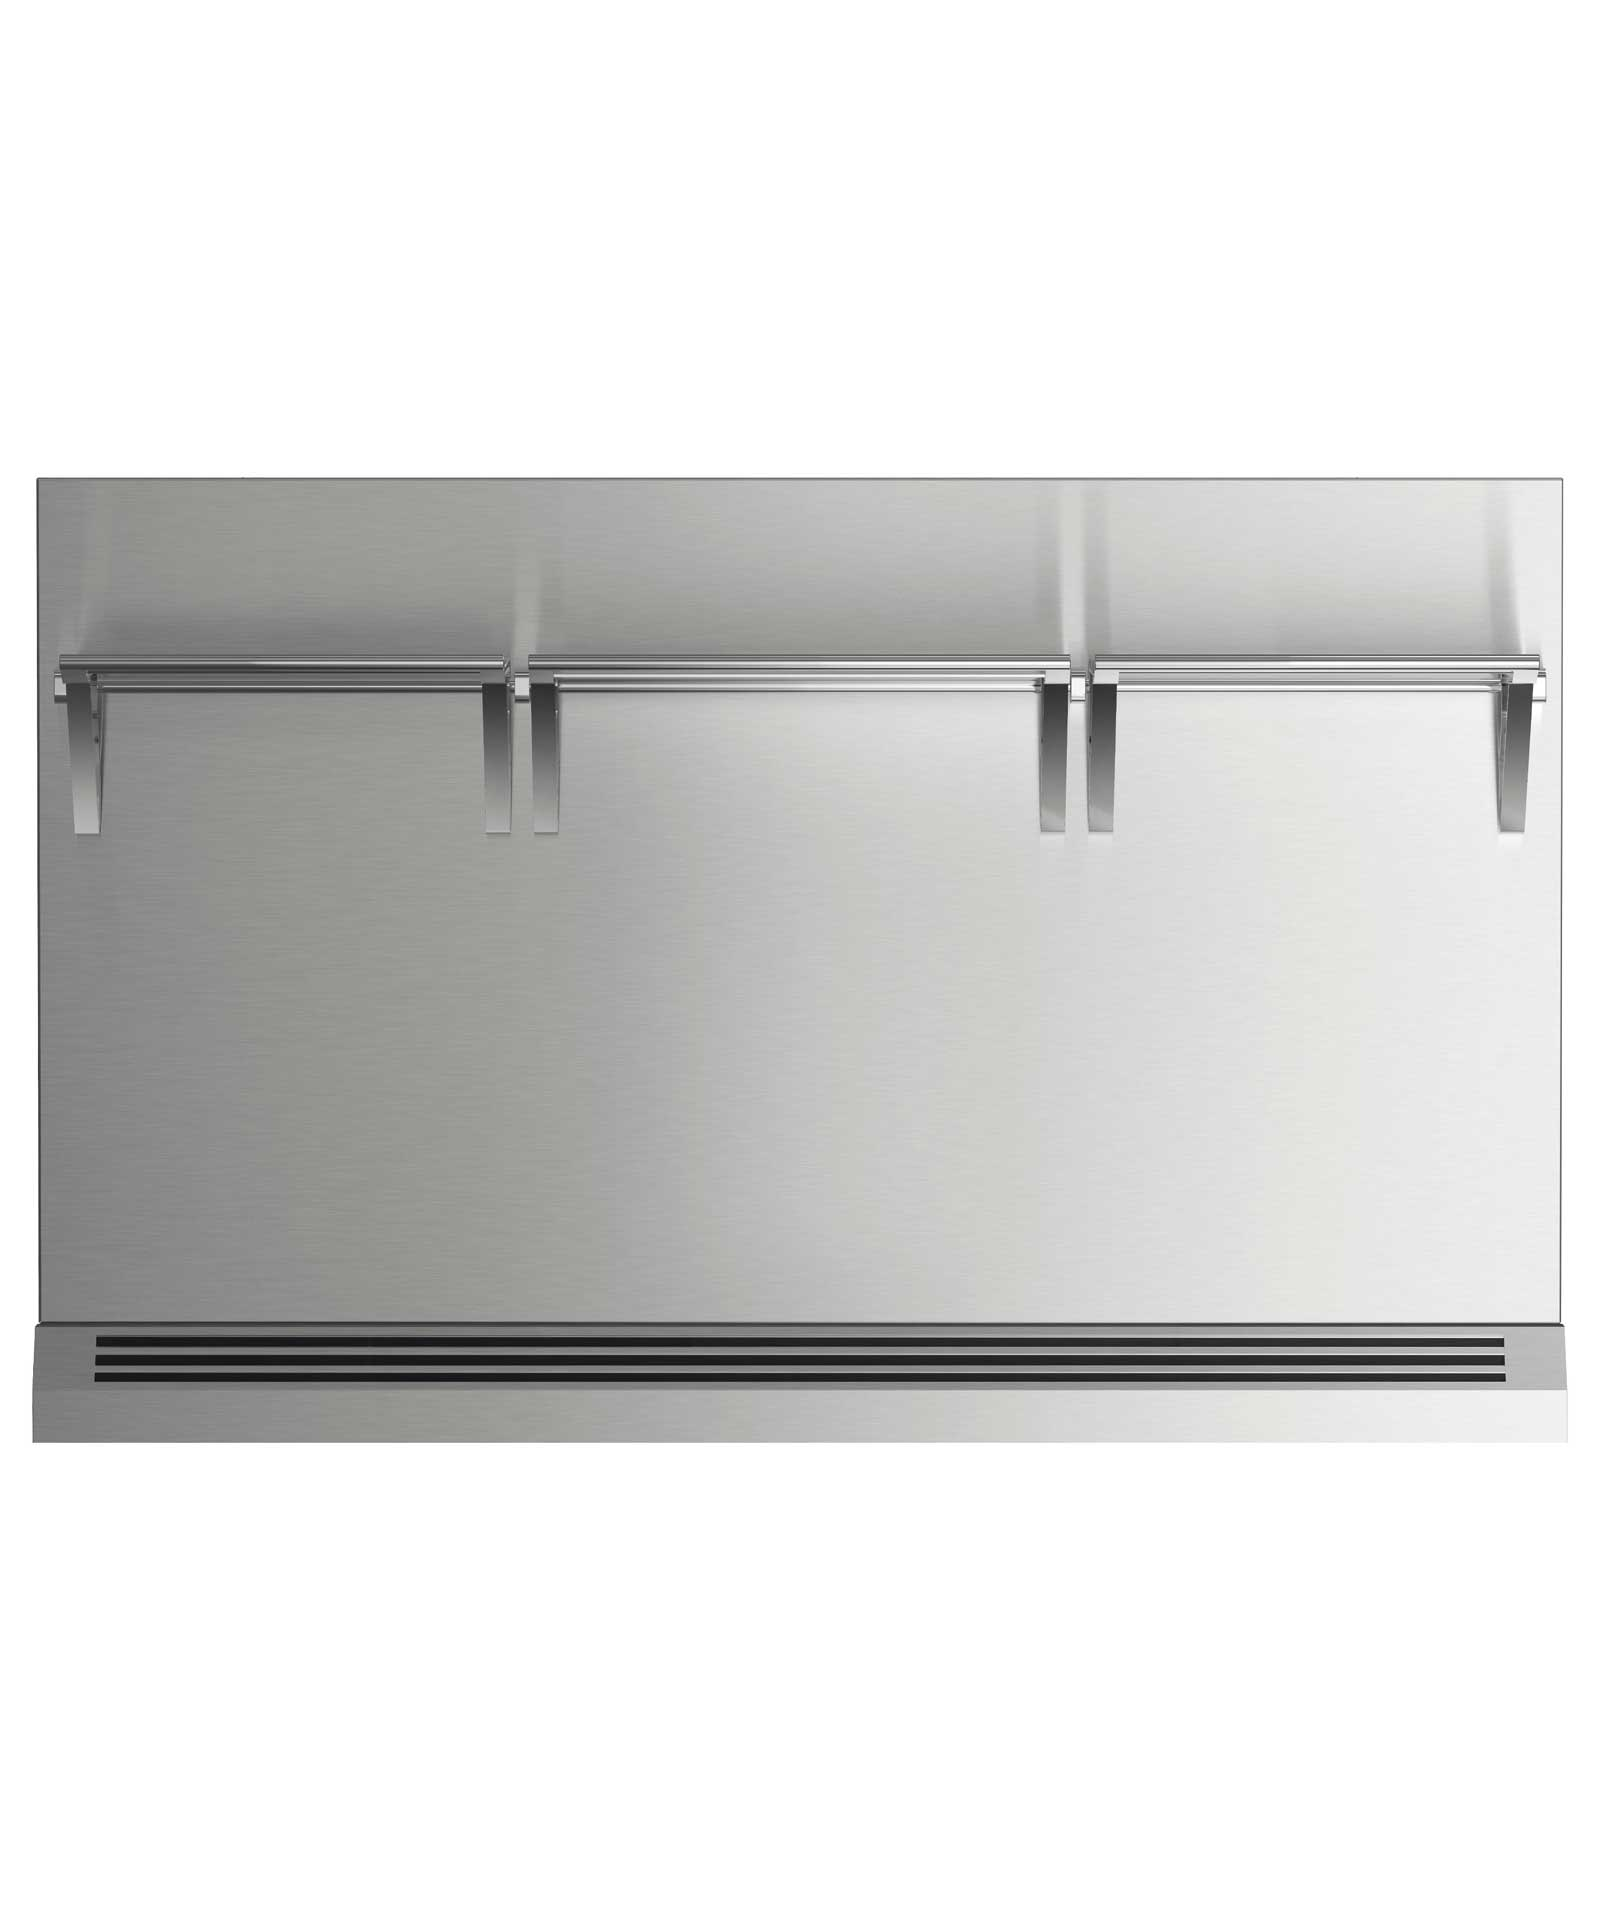 """Fisher and Paykel 48"""" Range High Backguard for combustible situation"""